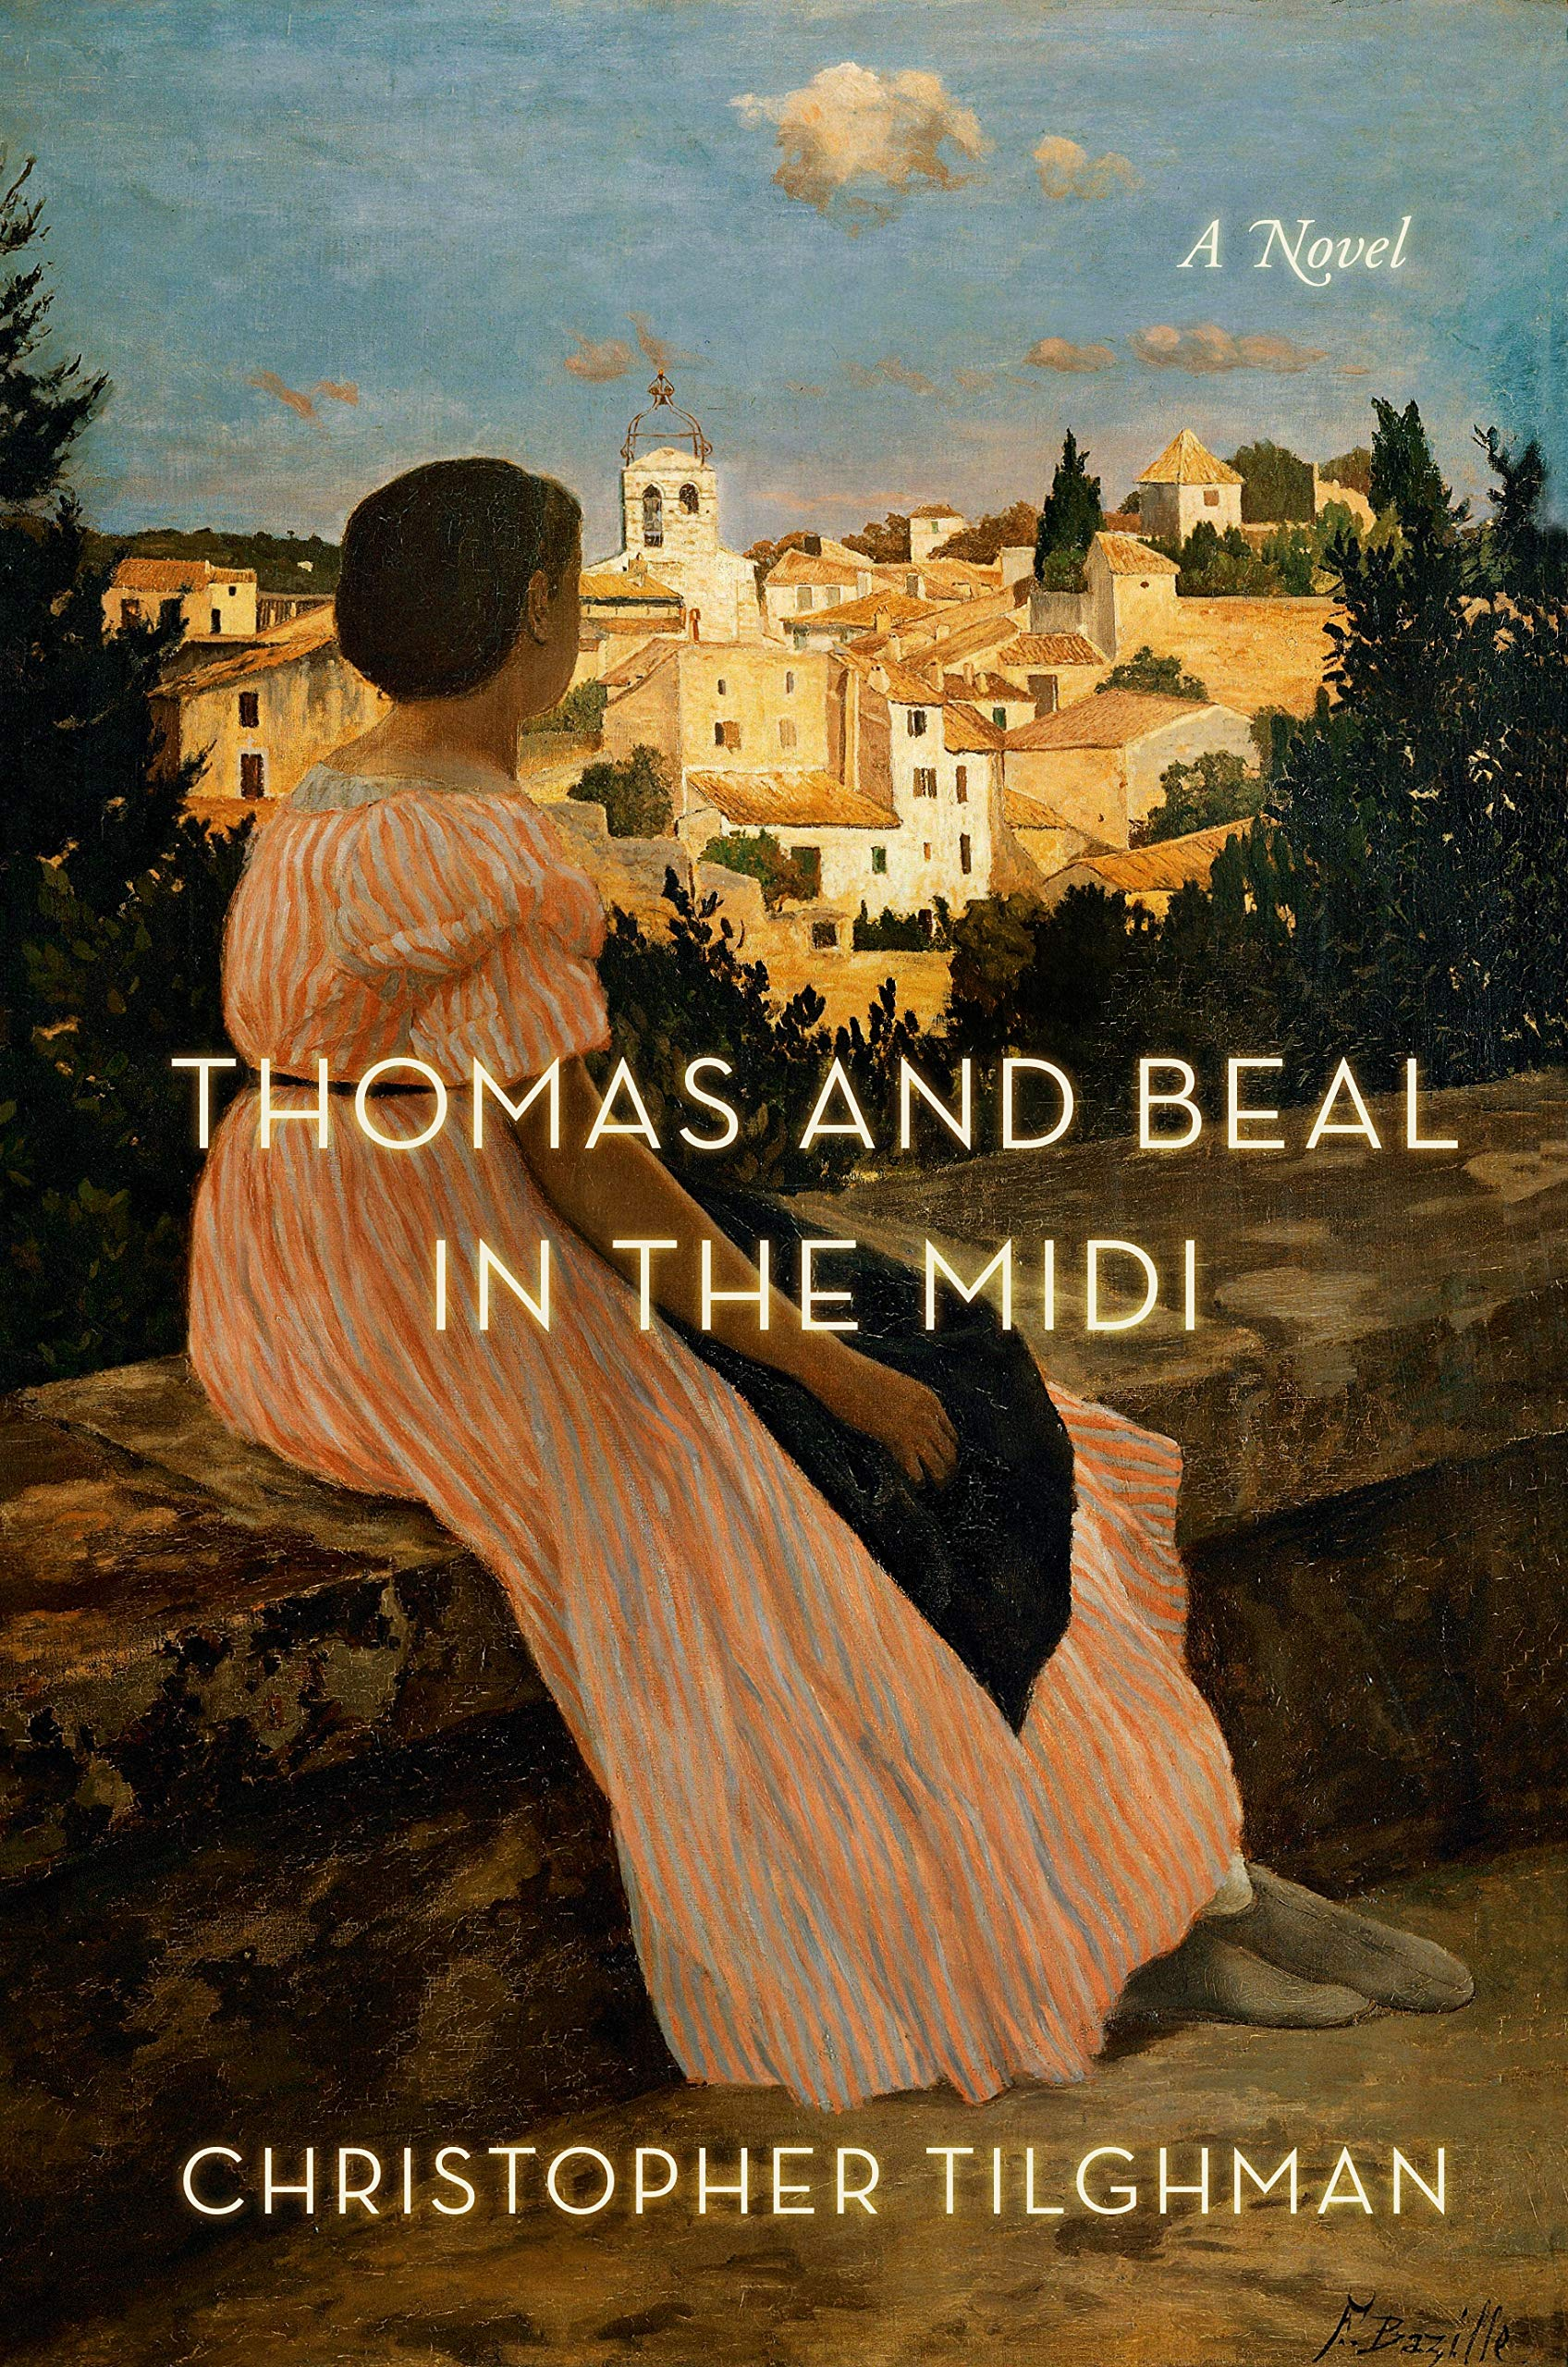 Thomas and Beal in the Midi: A Novel: Christopher Tilghman